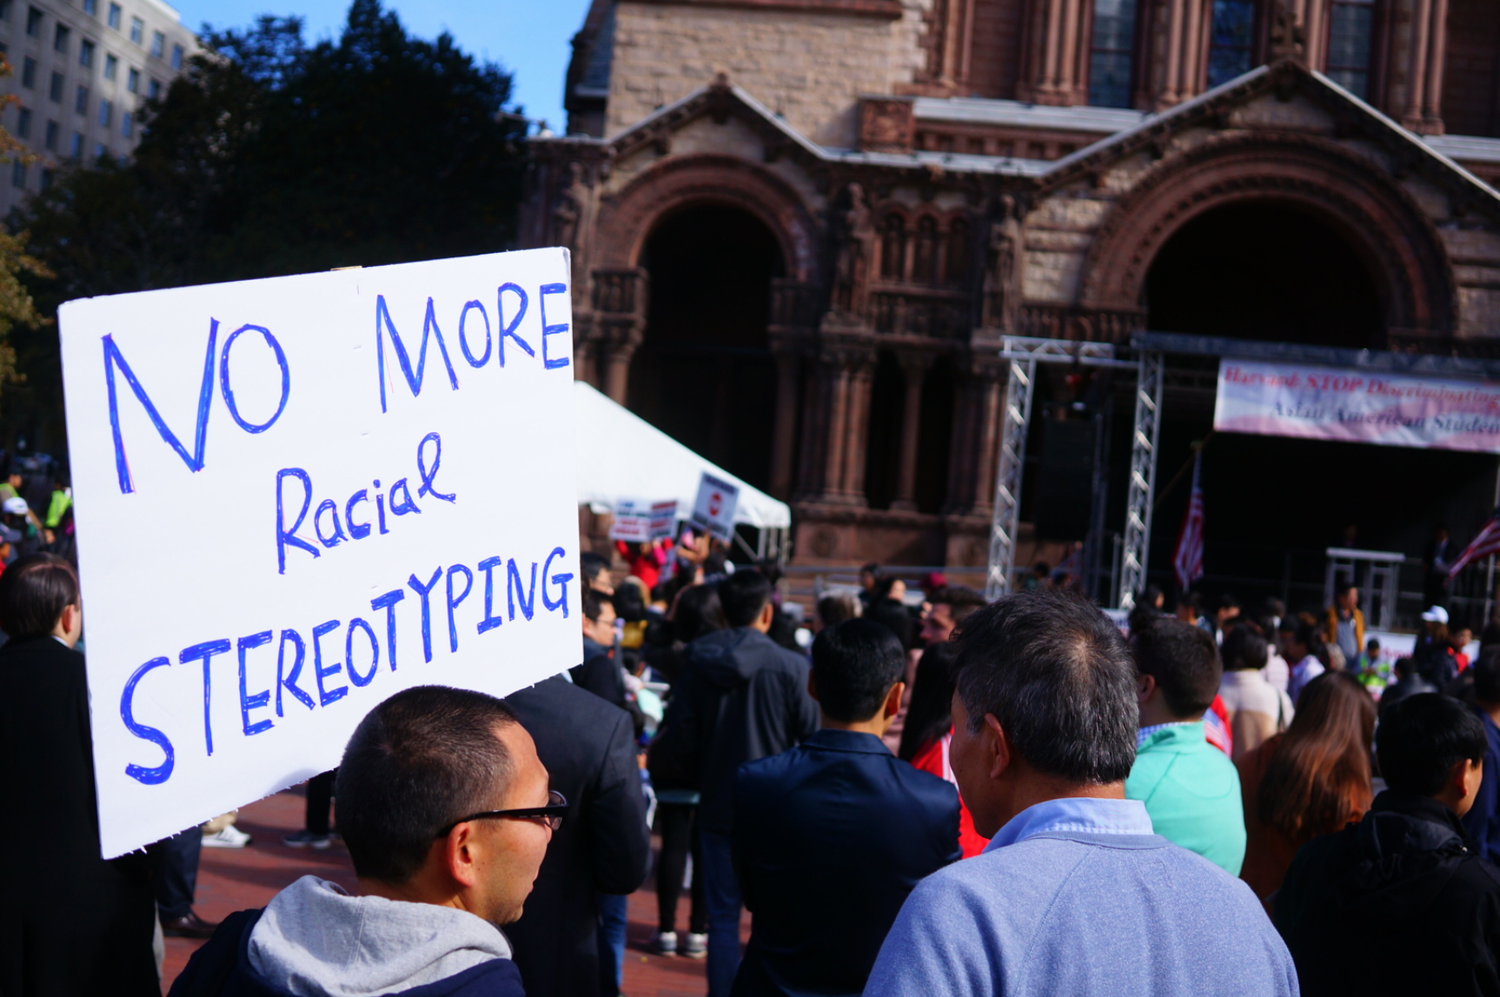 Demonstrators mill around during a pro-Students for Fair Admissions rally held in Copley Square Sunday.